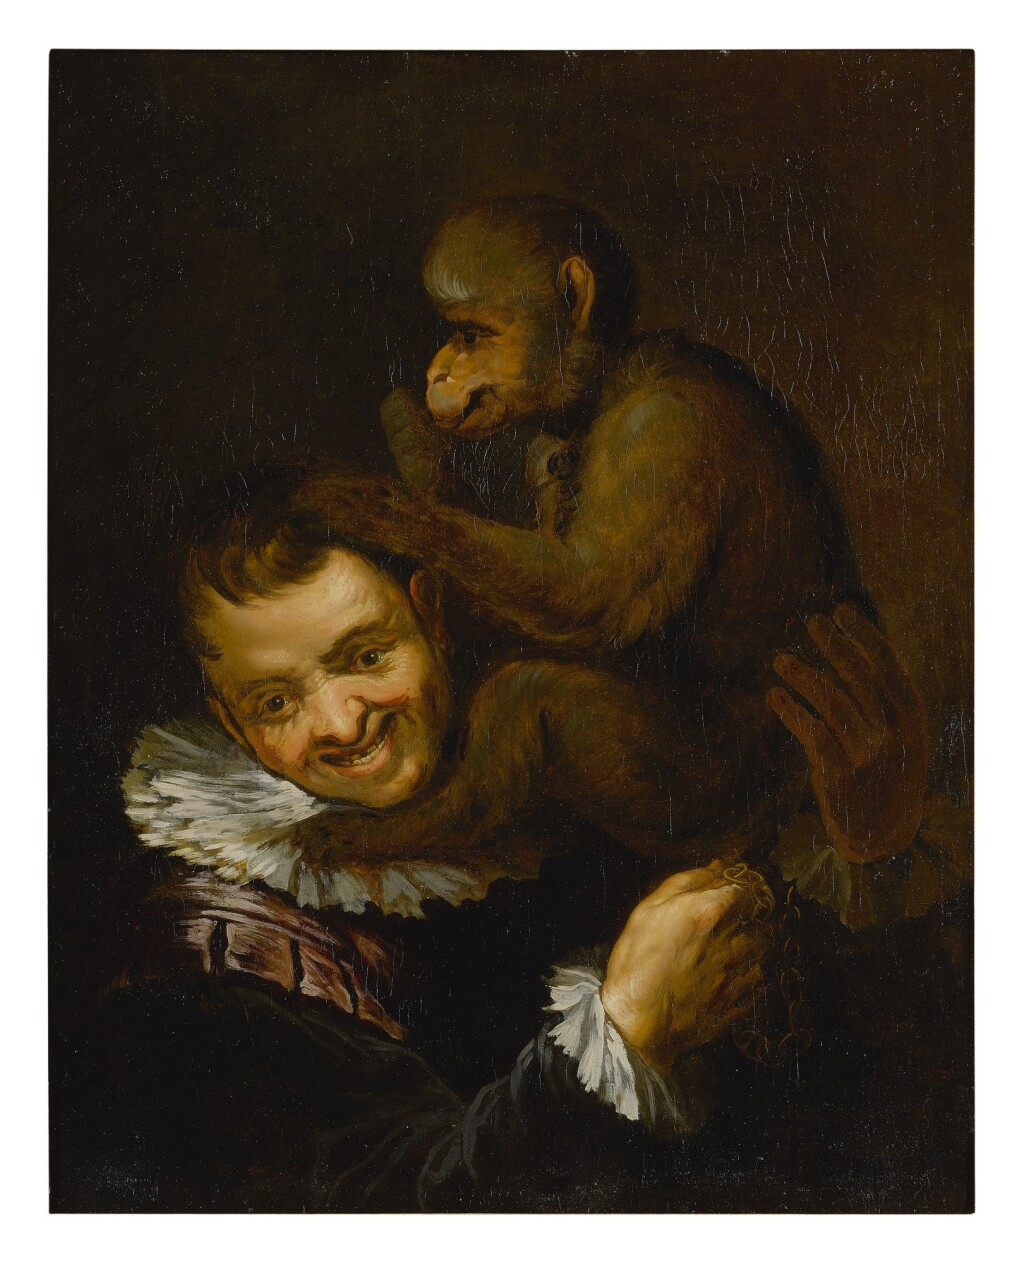 FOLLOWER OF ANNIBALE CARRACCI   MAN WITH A MONKEY ON HIS SHOULDER